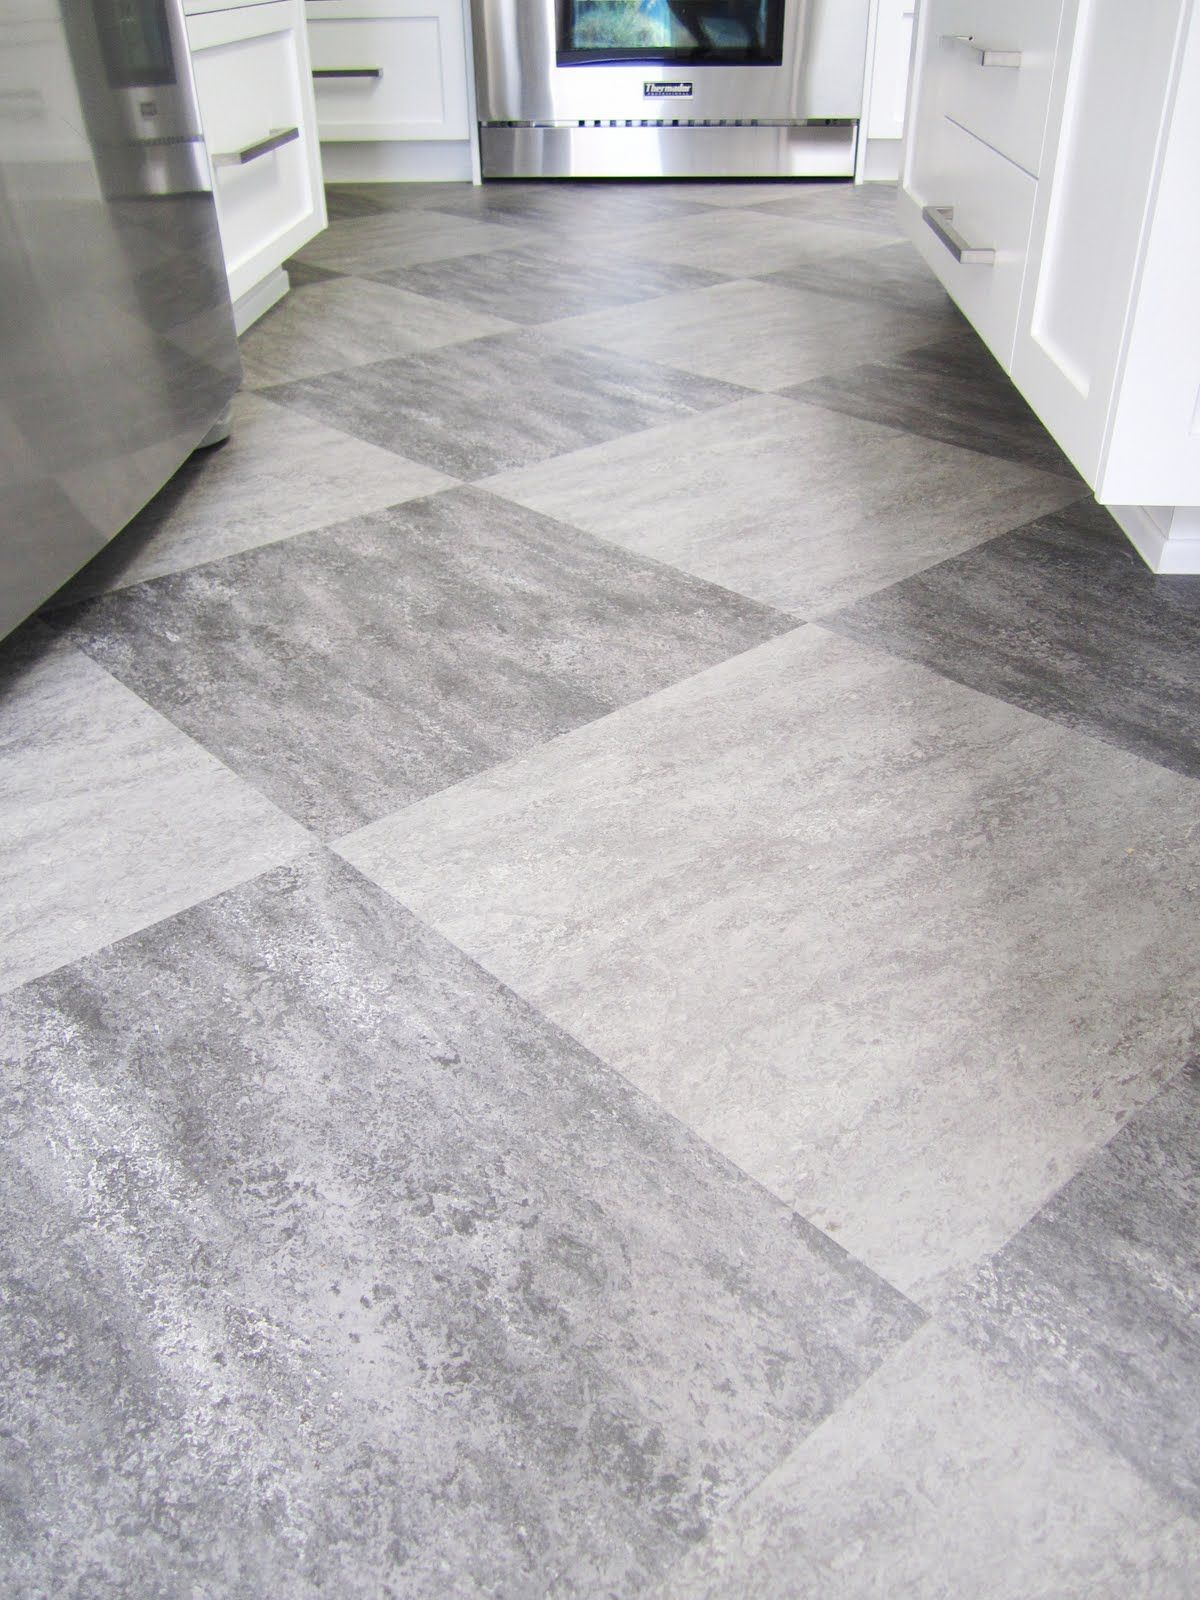 Qa architect client cook up a gorgeous functional kitchen grey floor patterns dailygadgetfo Image collections